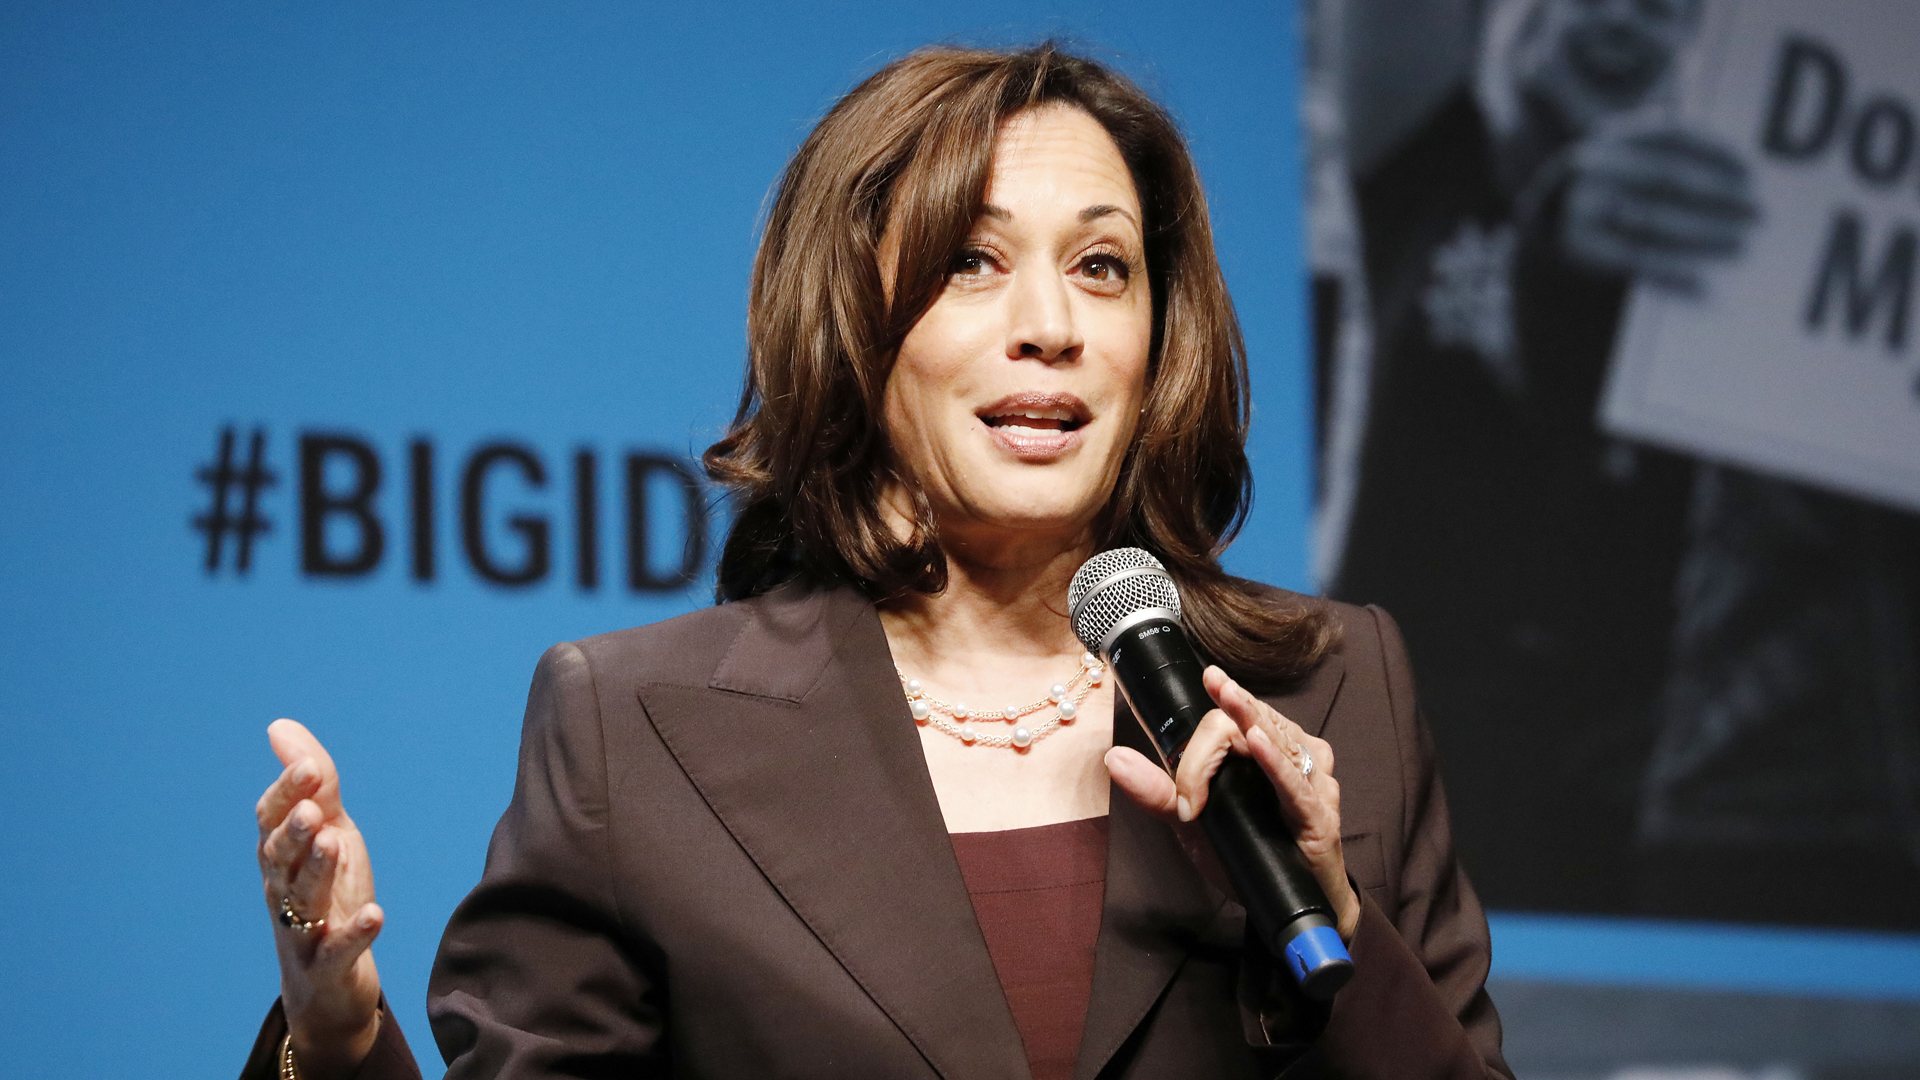 Kamala Harris speaks onstage at the MoveOn Big Ideas Forum at The Warfield Theatre on June 01, 2019 in San Francisco, California. (Credit Kimberly White/Getty Images for MoveOn)